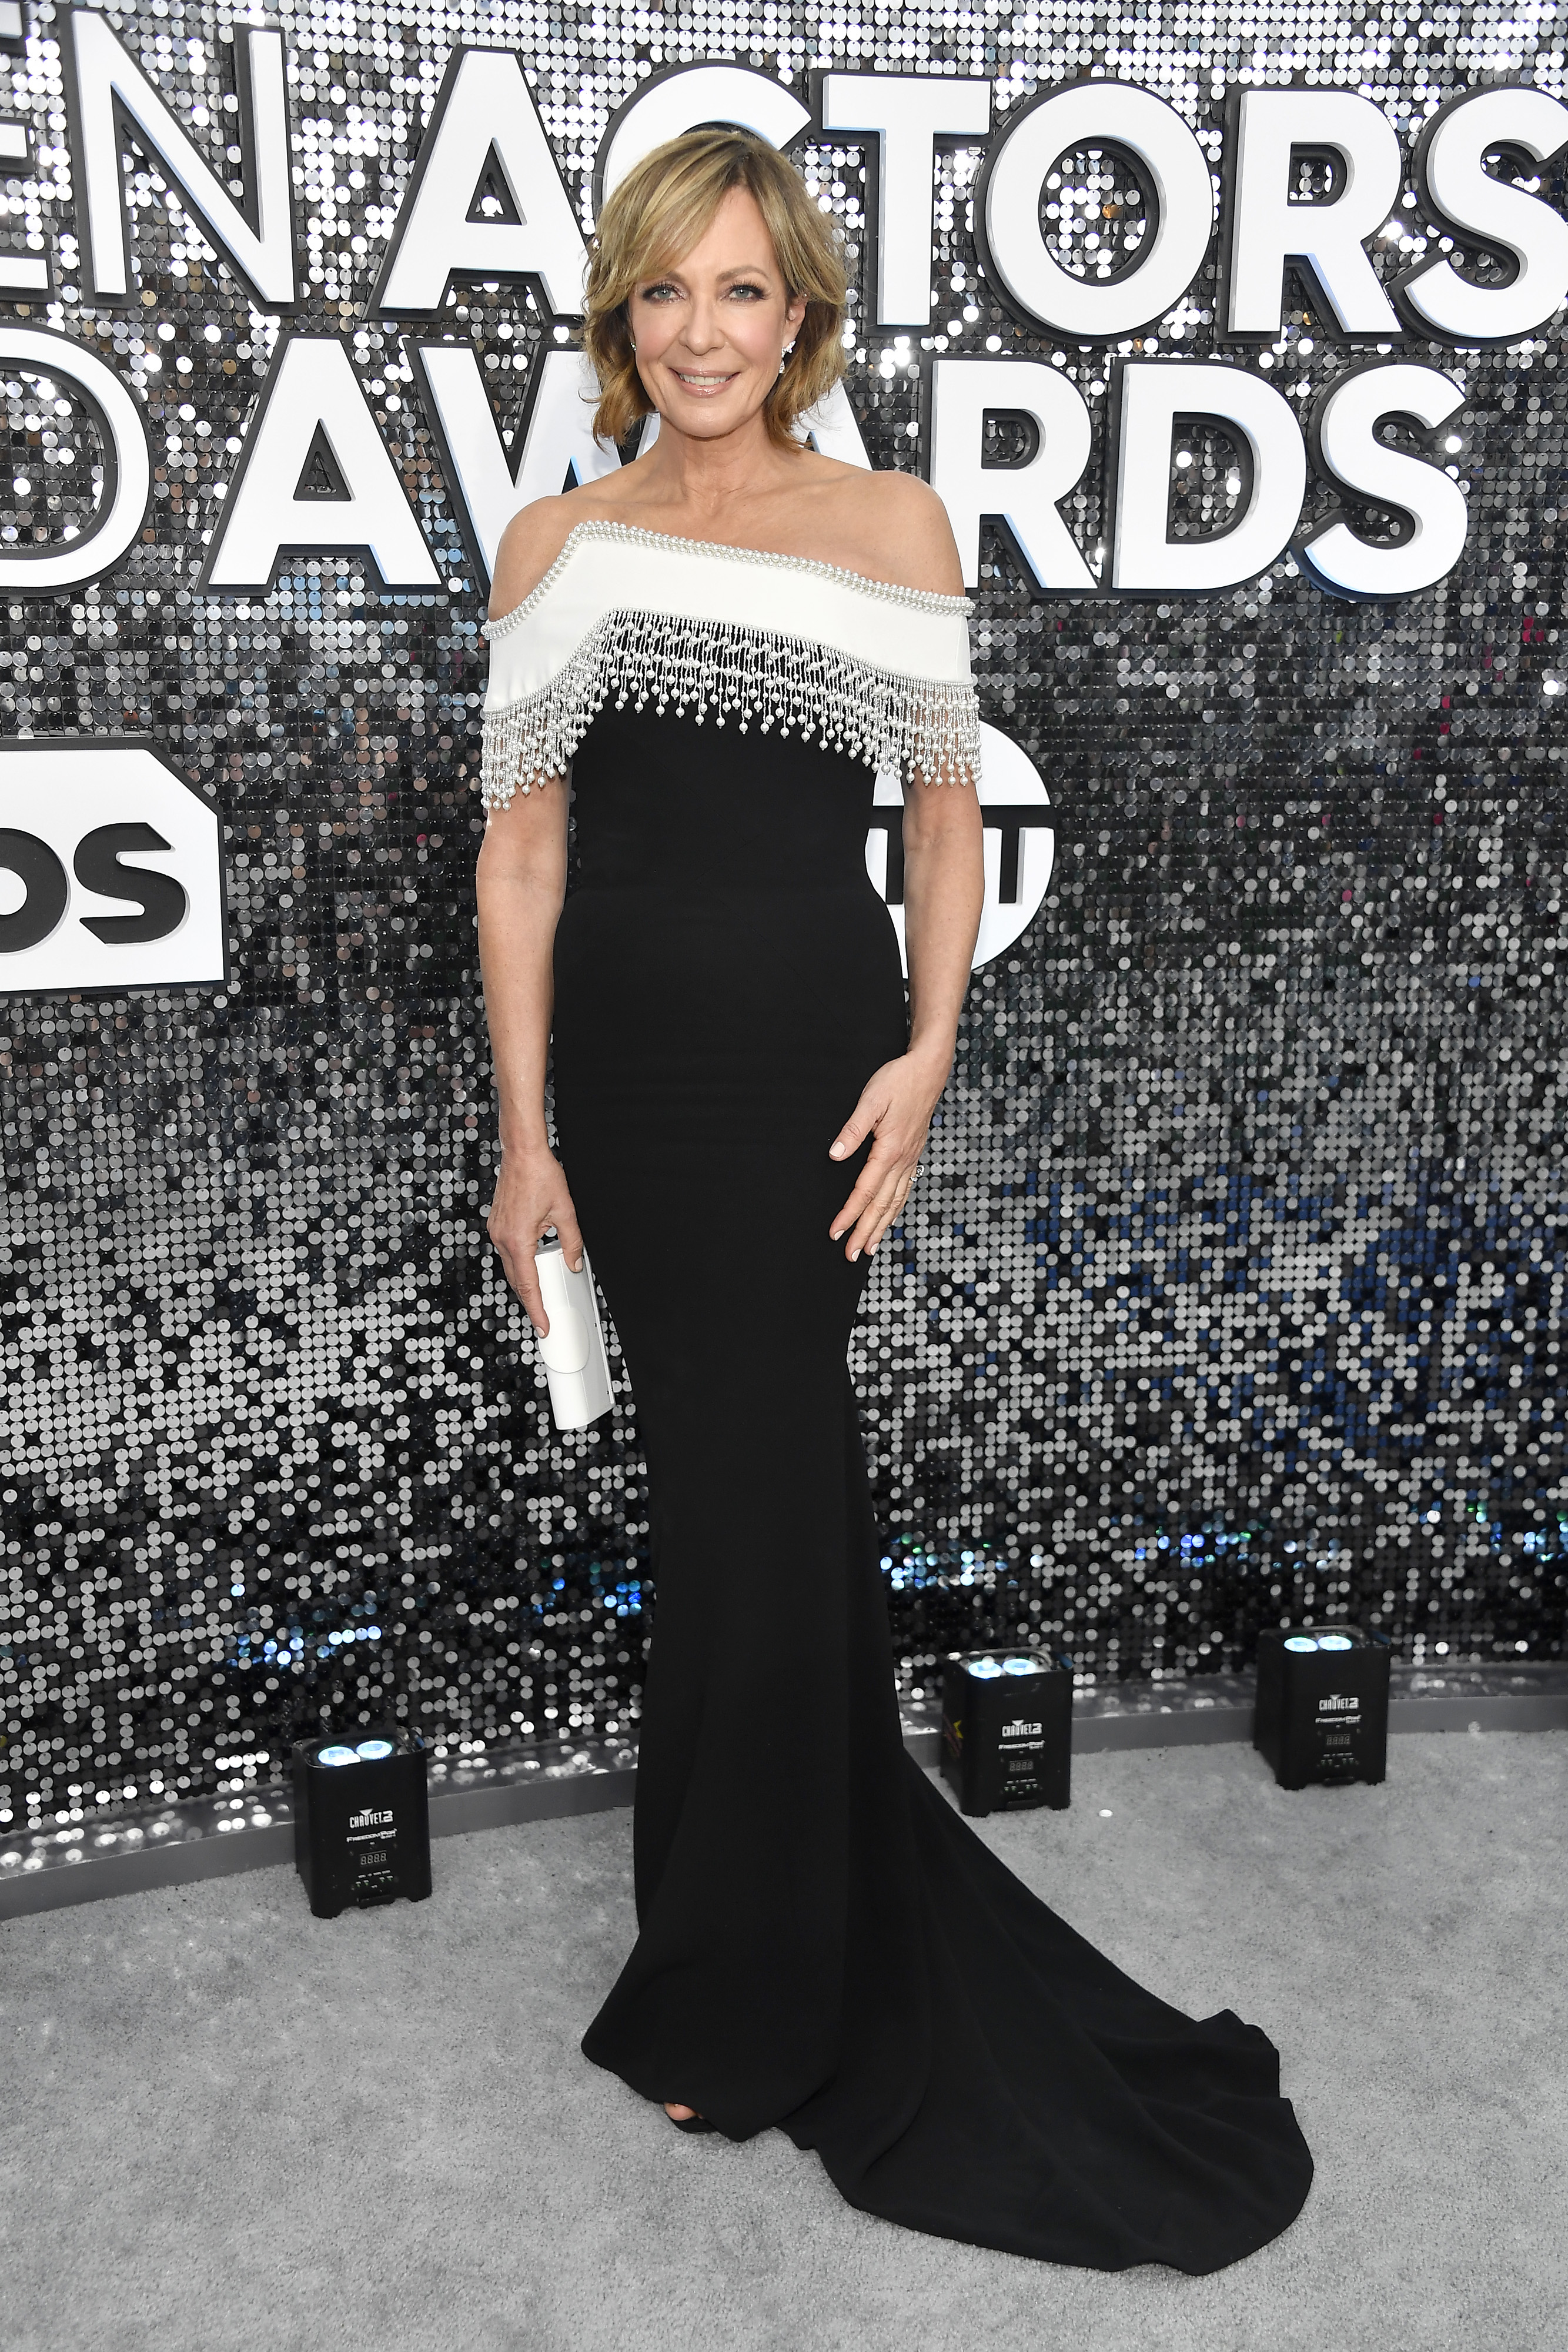 LOS ANGELES, CALIFORNIA - JANUARY 19: Allison Janney attends the 26th Annual Screen ActorsGuild Awards at The Shrine Auditorium on January 19, 2020 in Los Angeles, California. (Photo by Frazer Harrison/Getty Images)